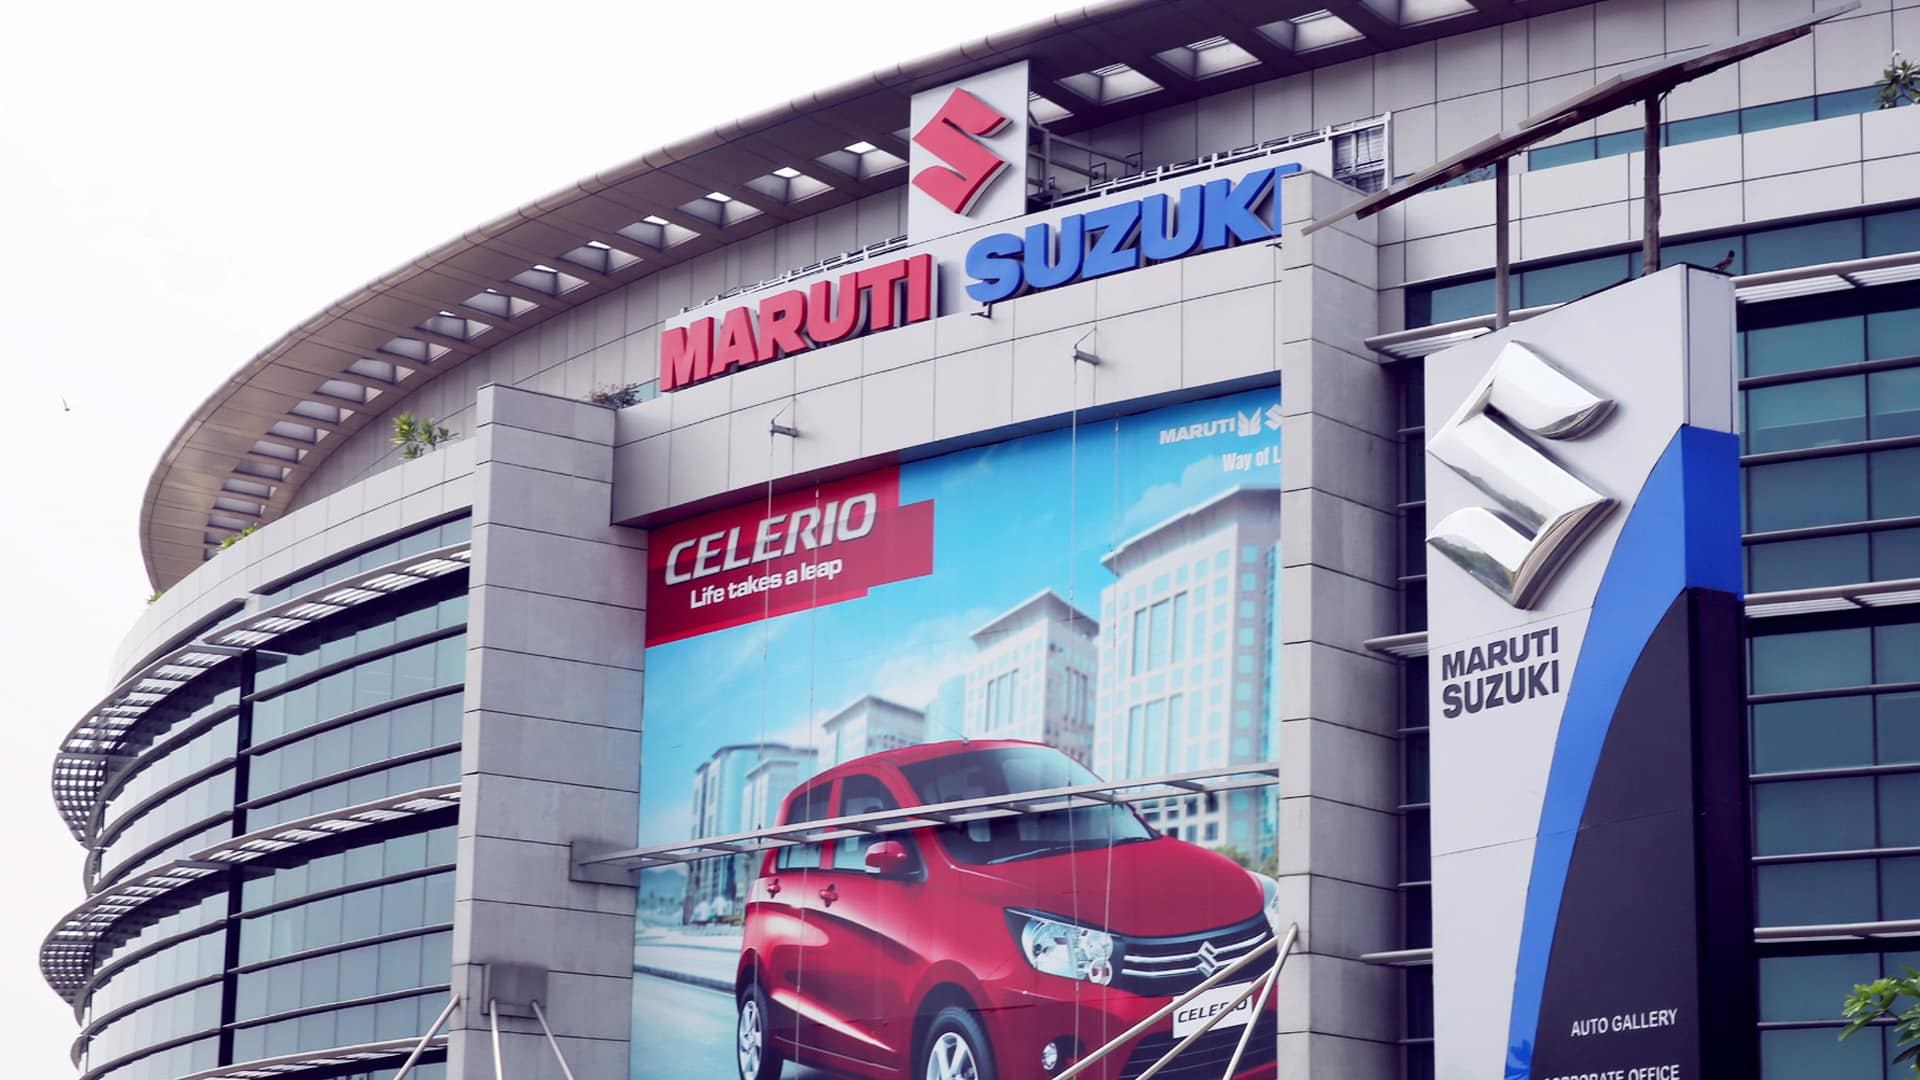 Maruti Suzuki's Sep production to be affected due to semiconductor shortage